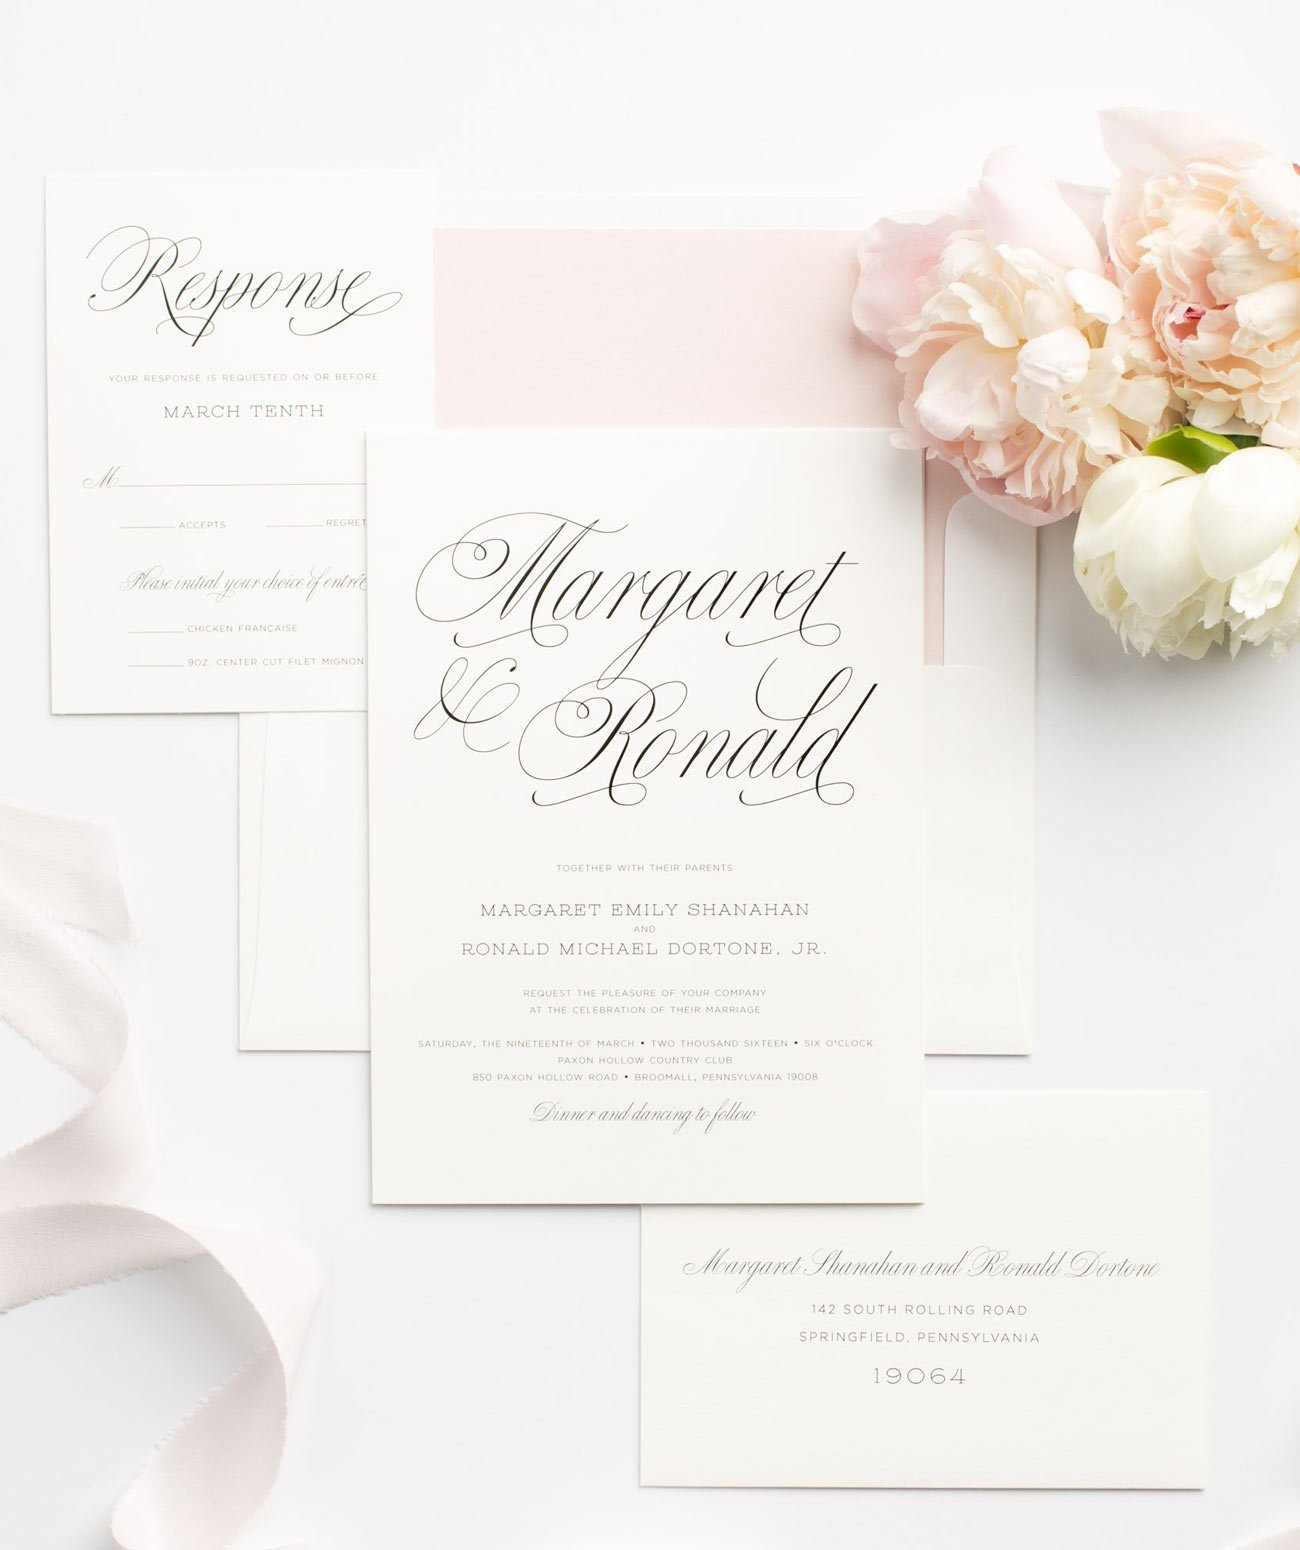 Romantic Wedding Invitations with gorgeous gray calligraphy and a blush pink envelope liner